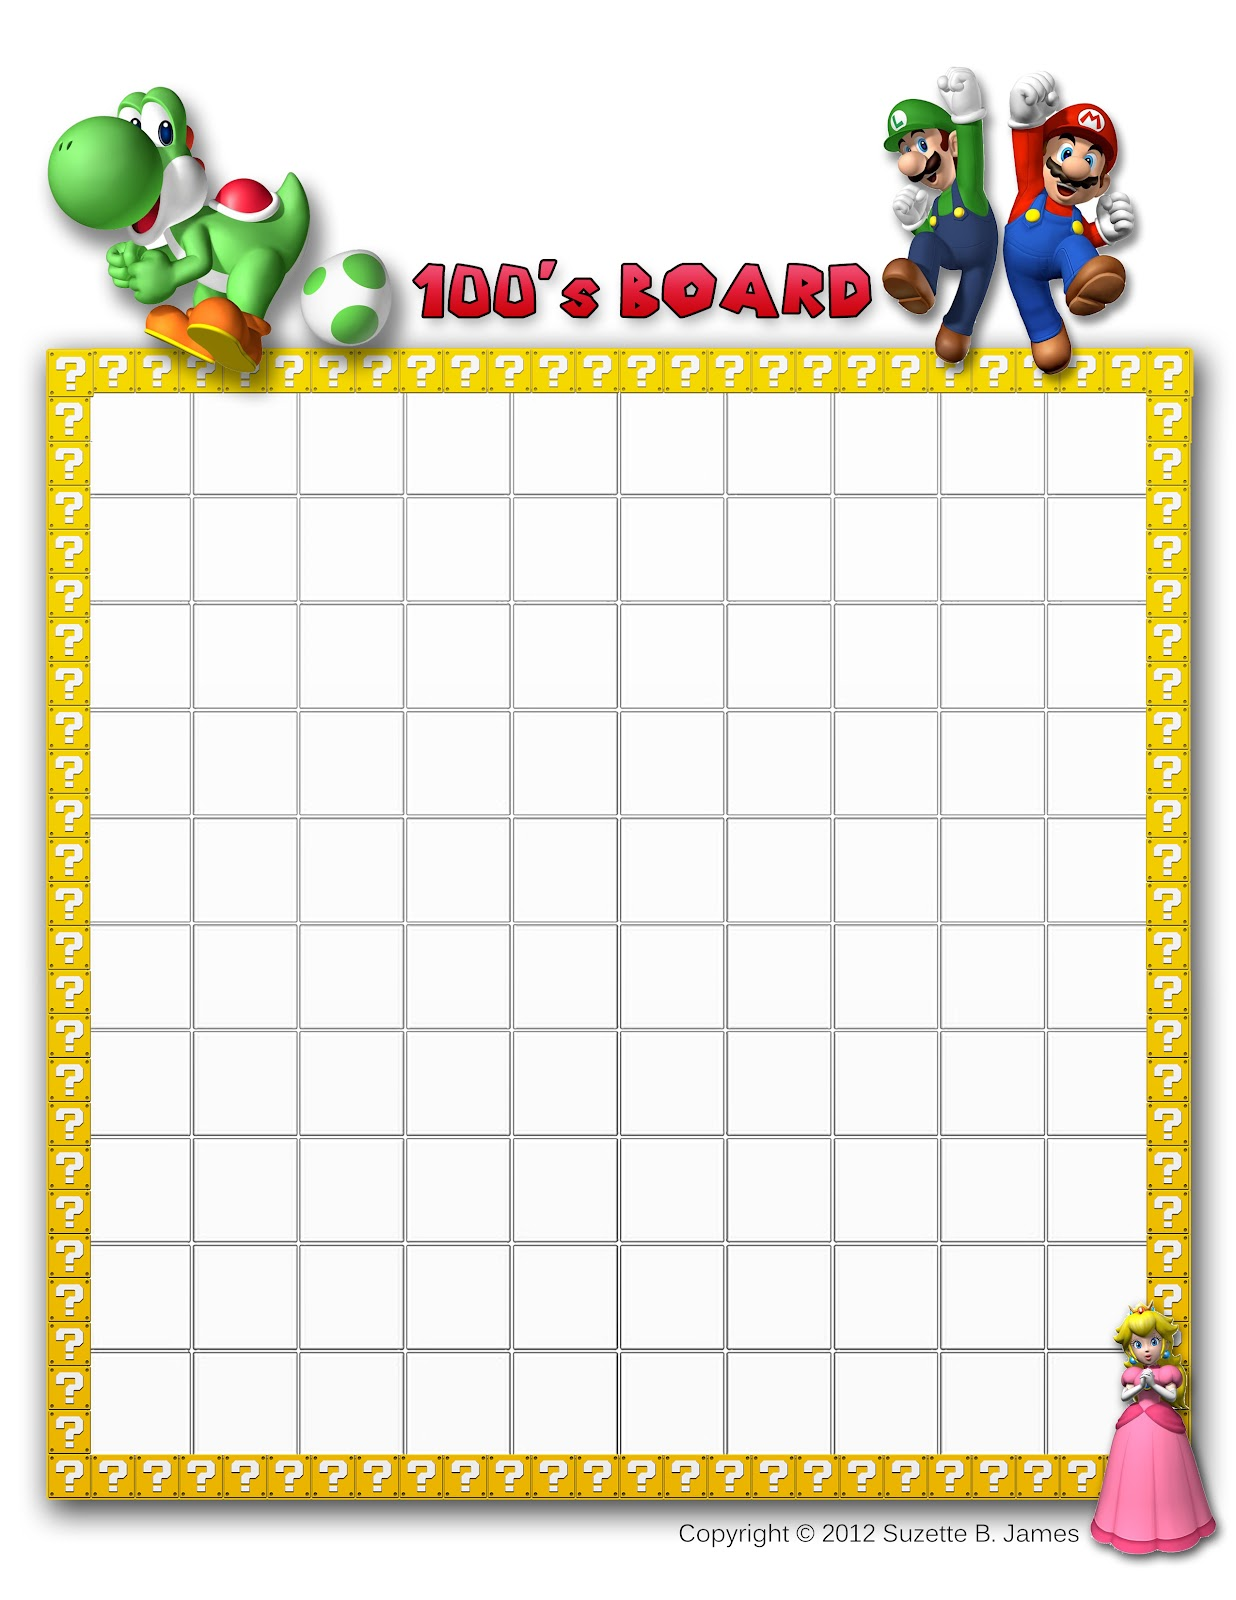 Hundreds Chart Printable | Search Results | Calendar 2015